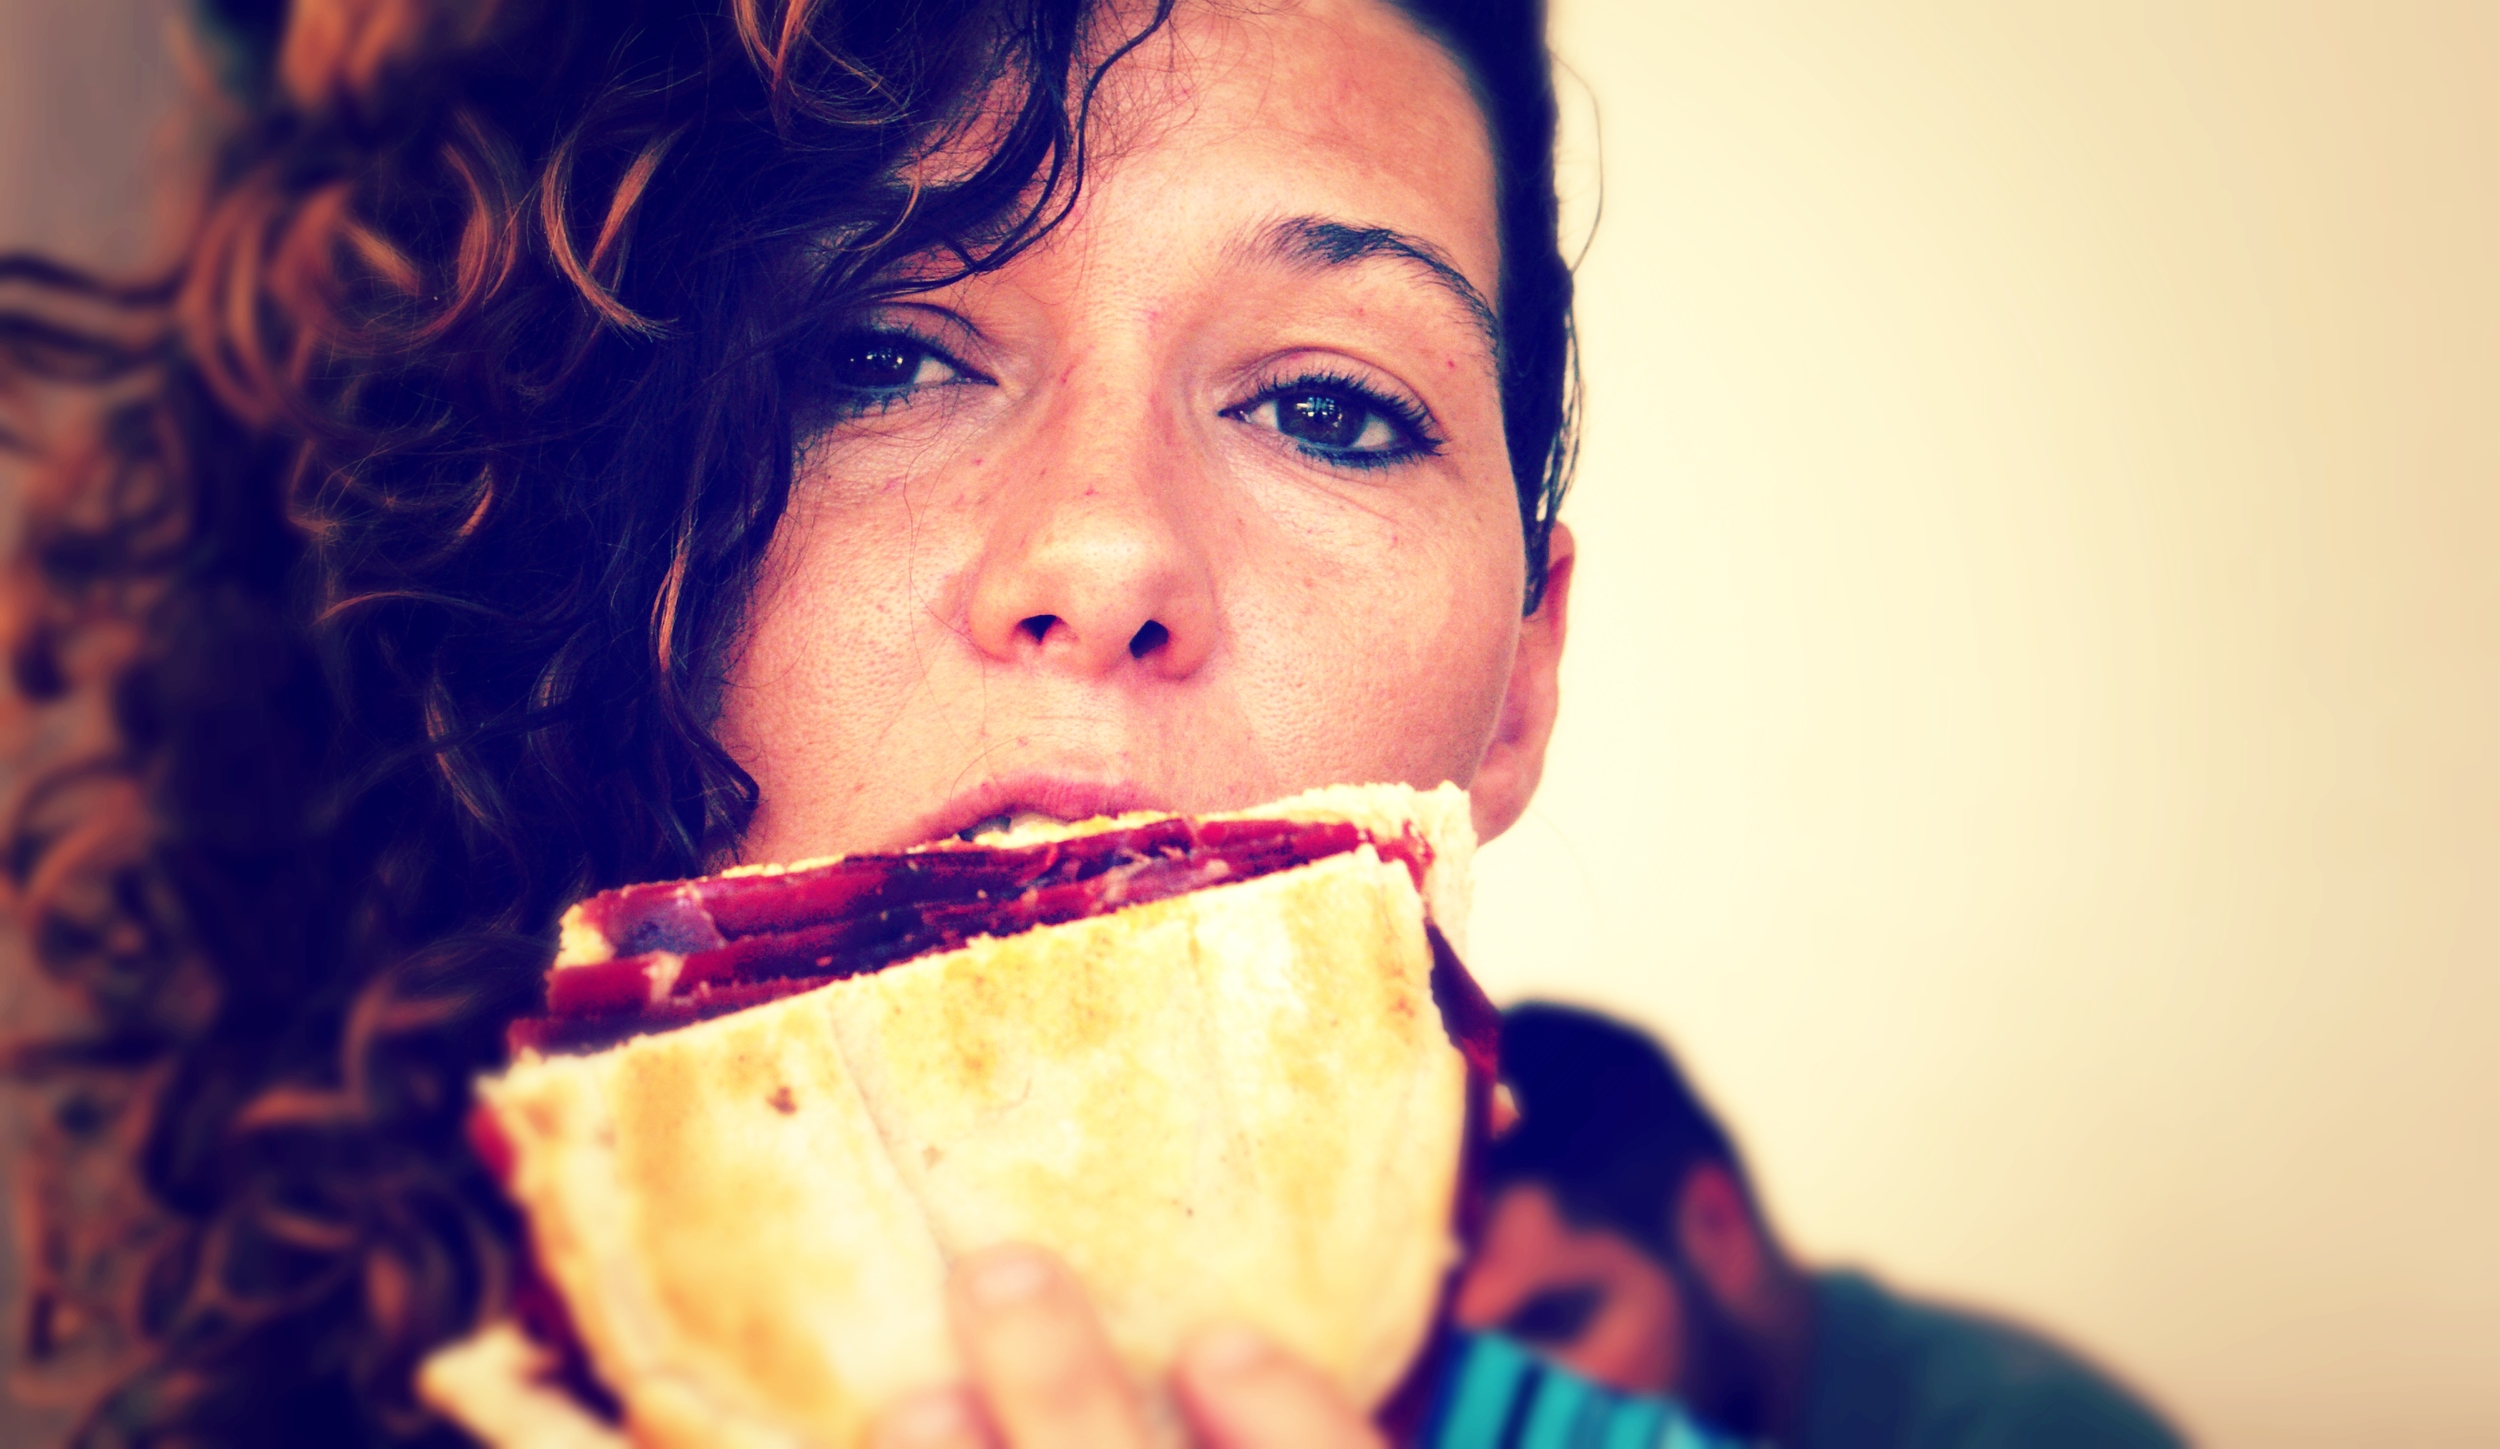 Laura goes for  Cecina  sandwich #yum